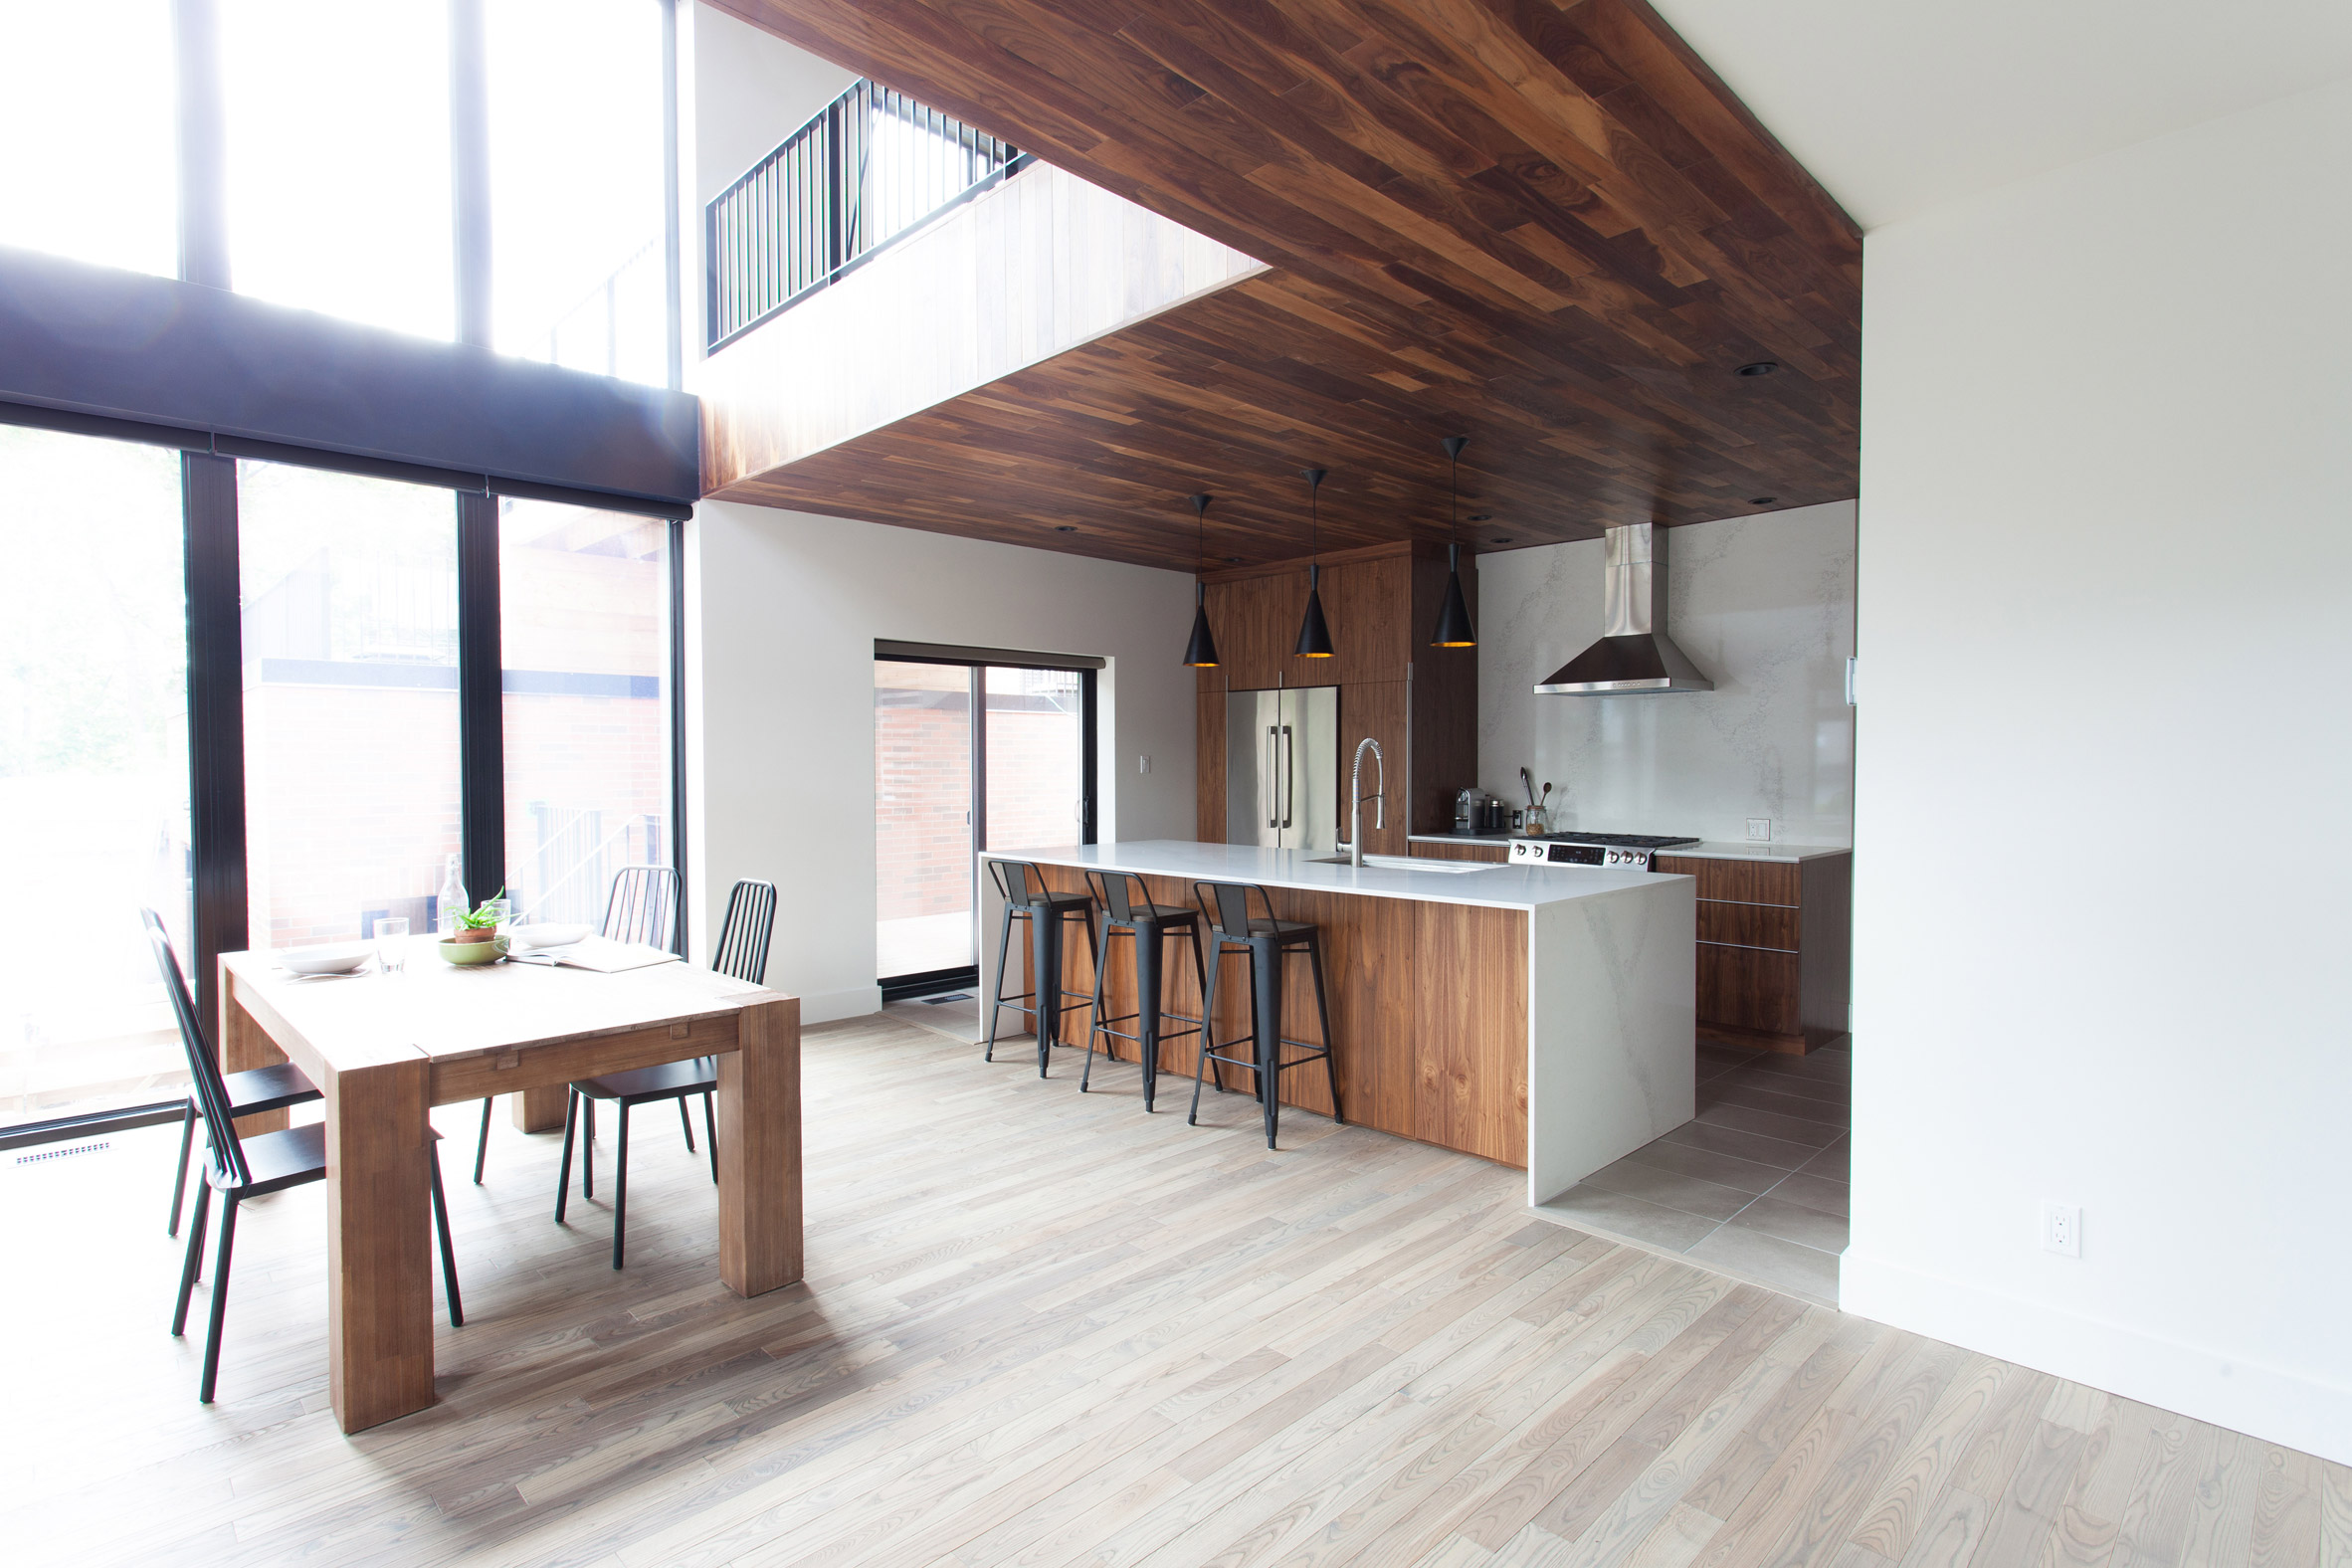 gounod-residence-by-appareil-architecture-montreal-canada-canadian-home-residence-renovation0A_dezeen_2364_col_4.jpg